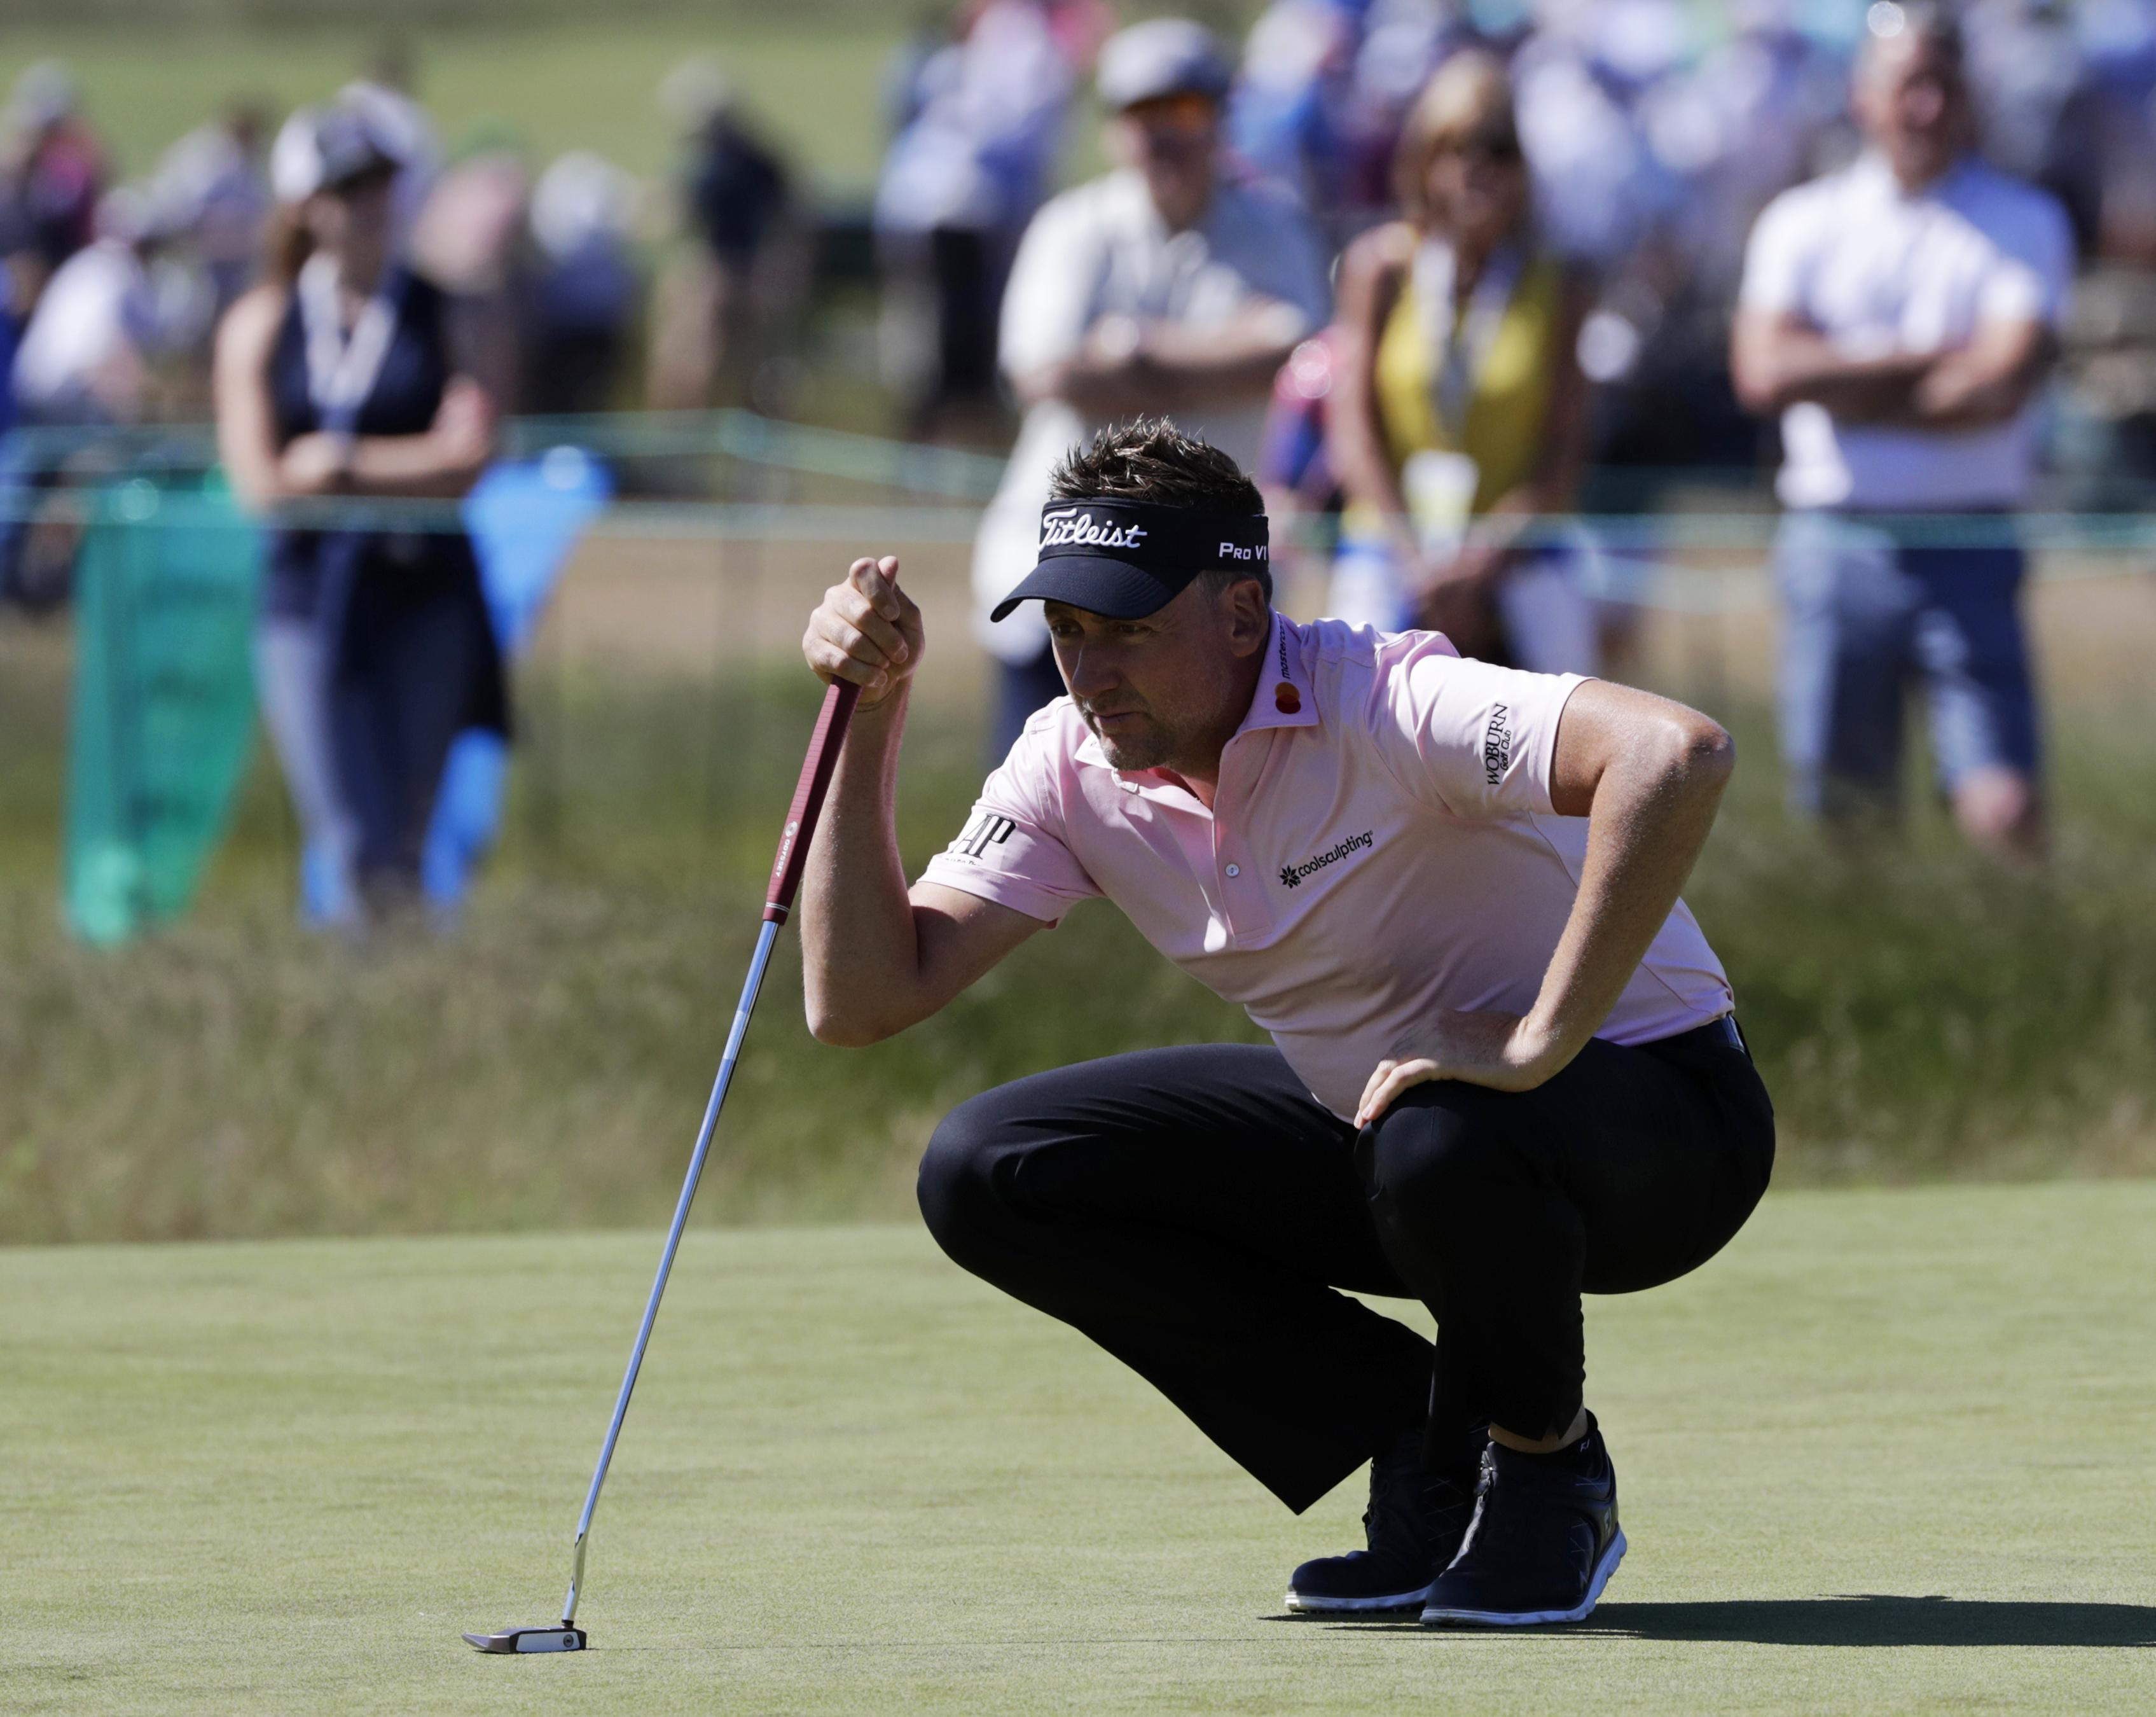 Ian Poulter finished his first round of the US Open with a share of the lead